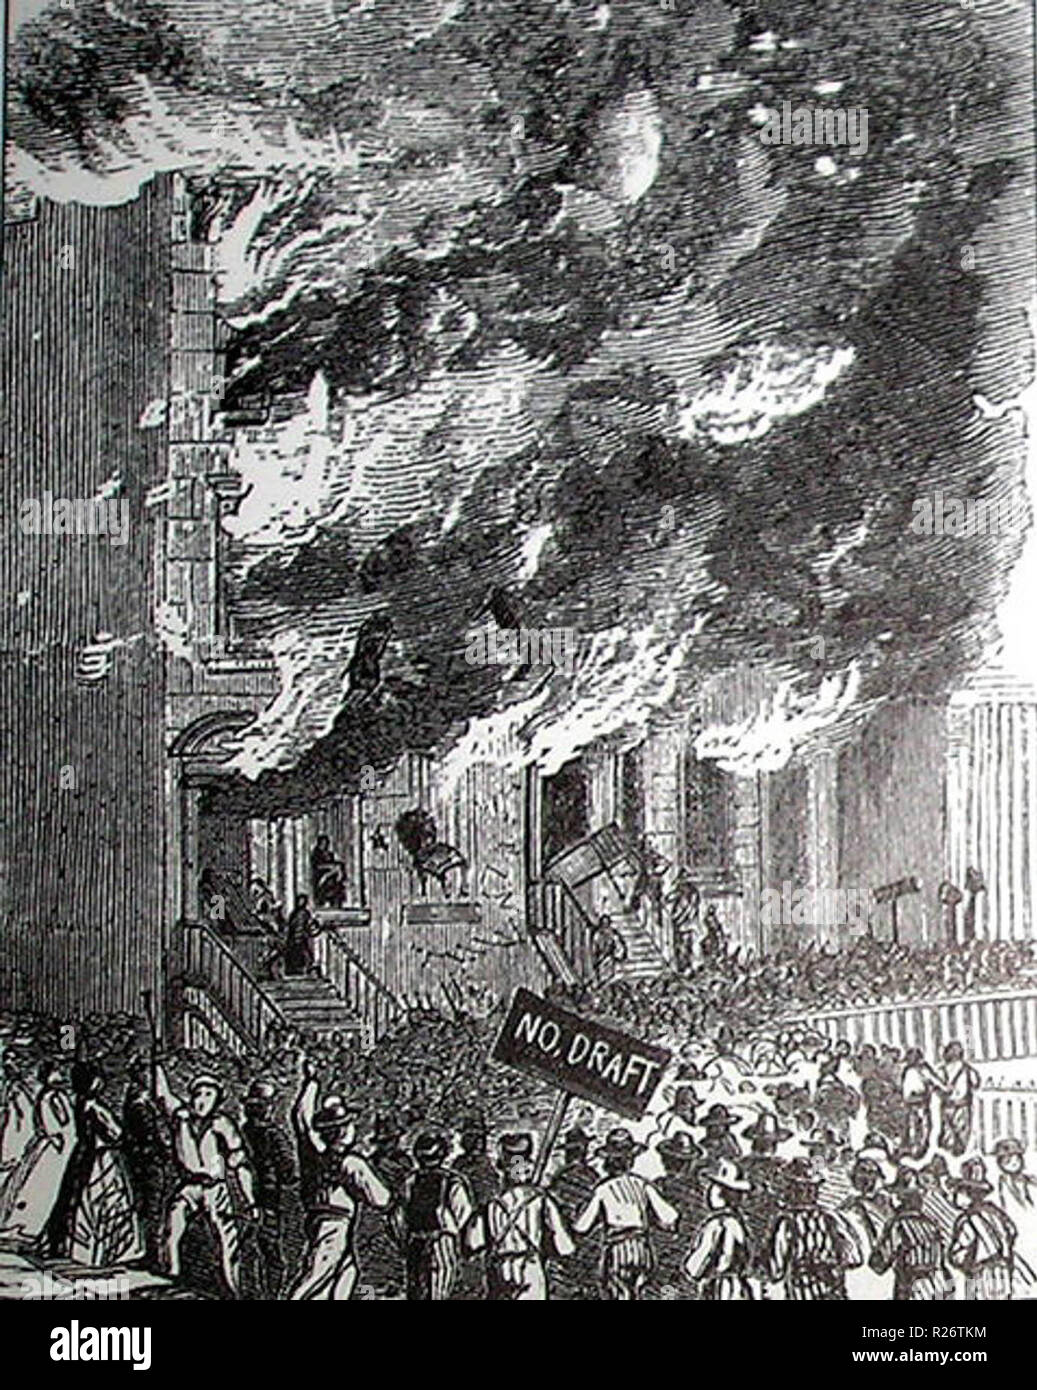 Rioters attacking a building during the New York anti-draft riots of 1863 - Stock Image